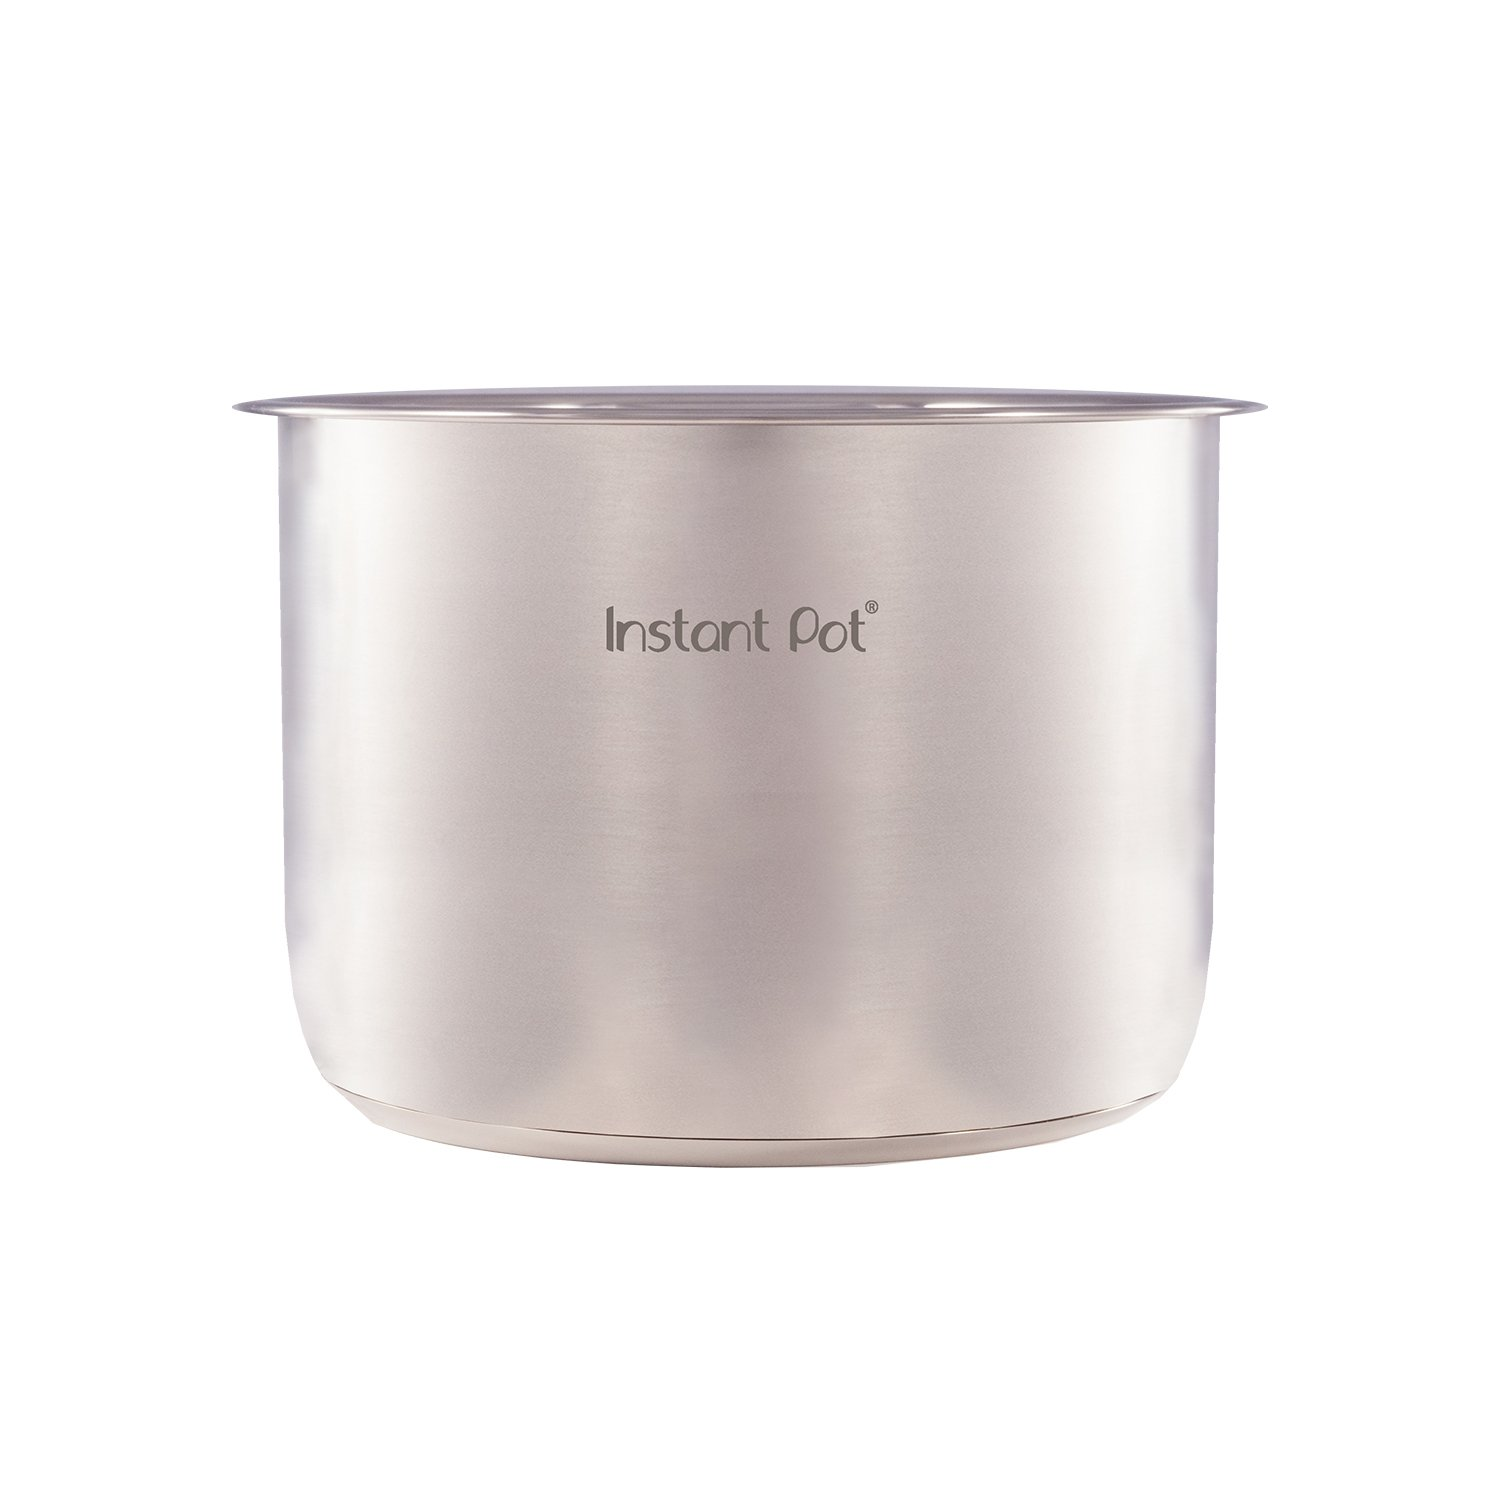 Inner Pot with 3 Ply Bottom, Stainless Steel 6 Qt